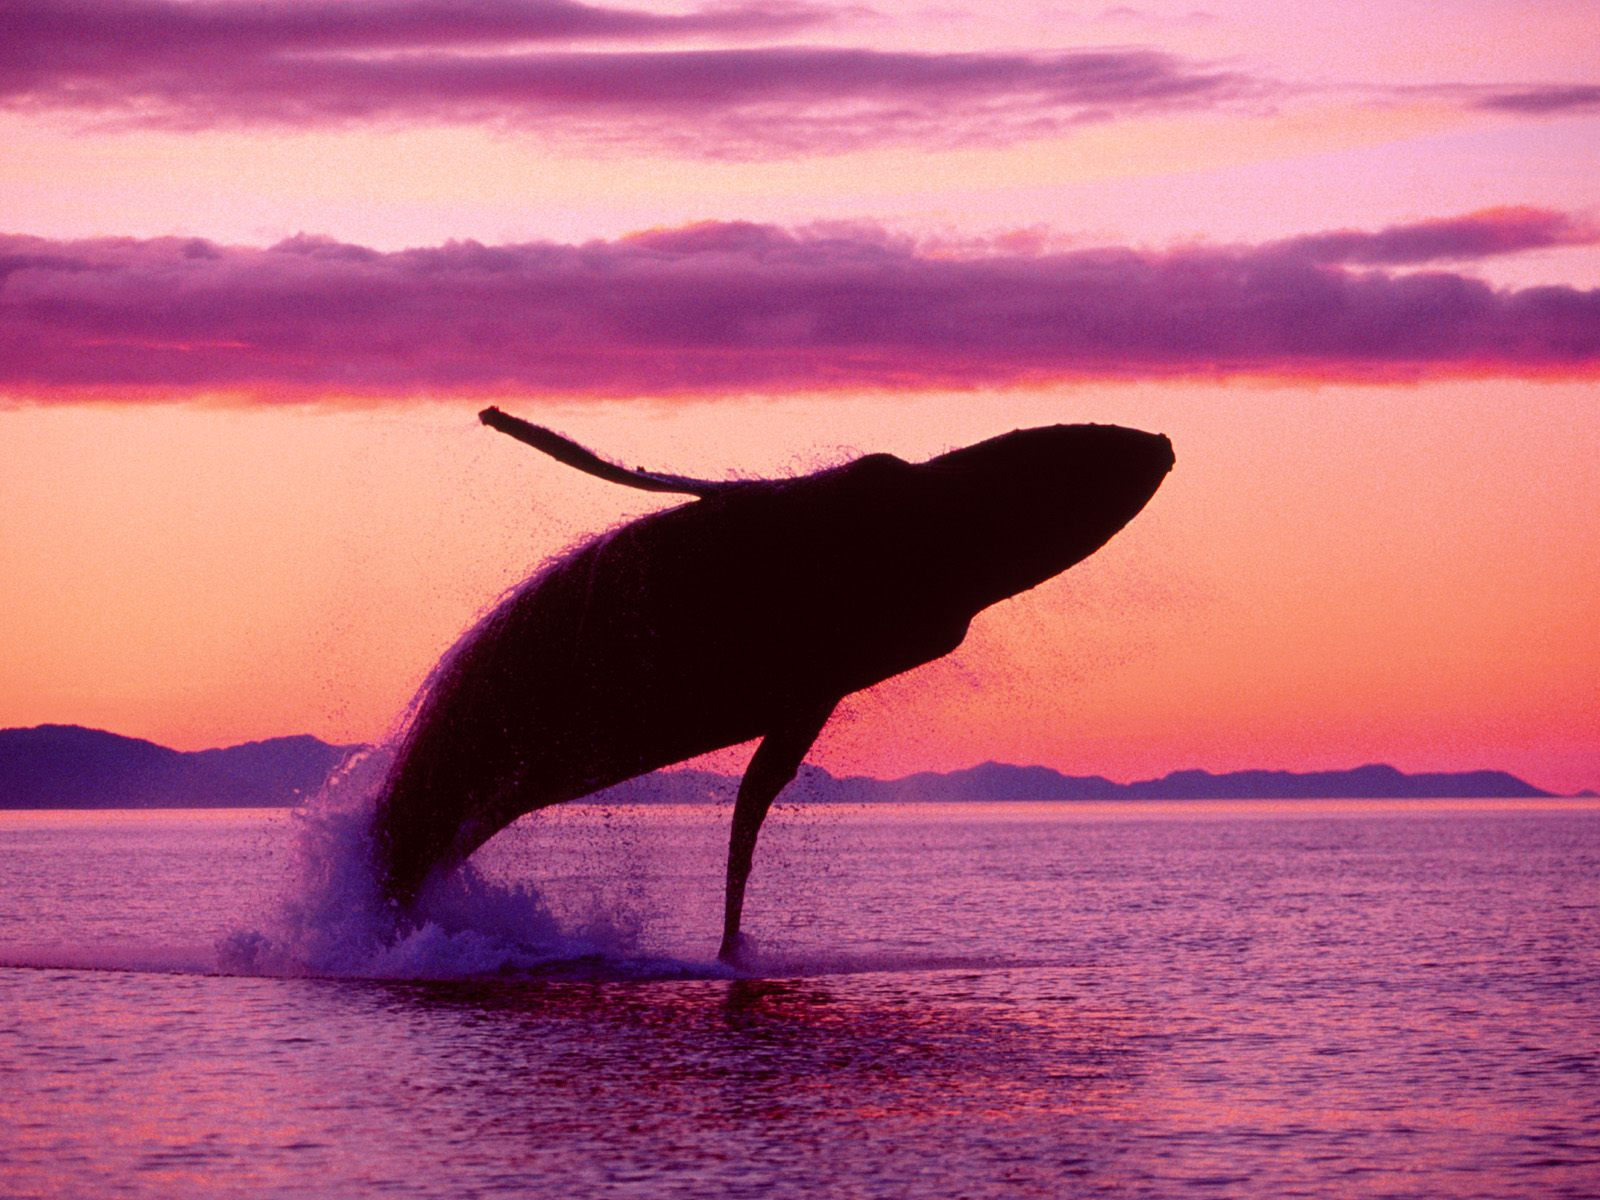 Whale wallpaper - photo#14